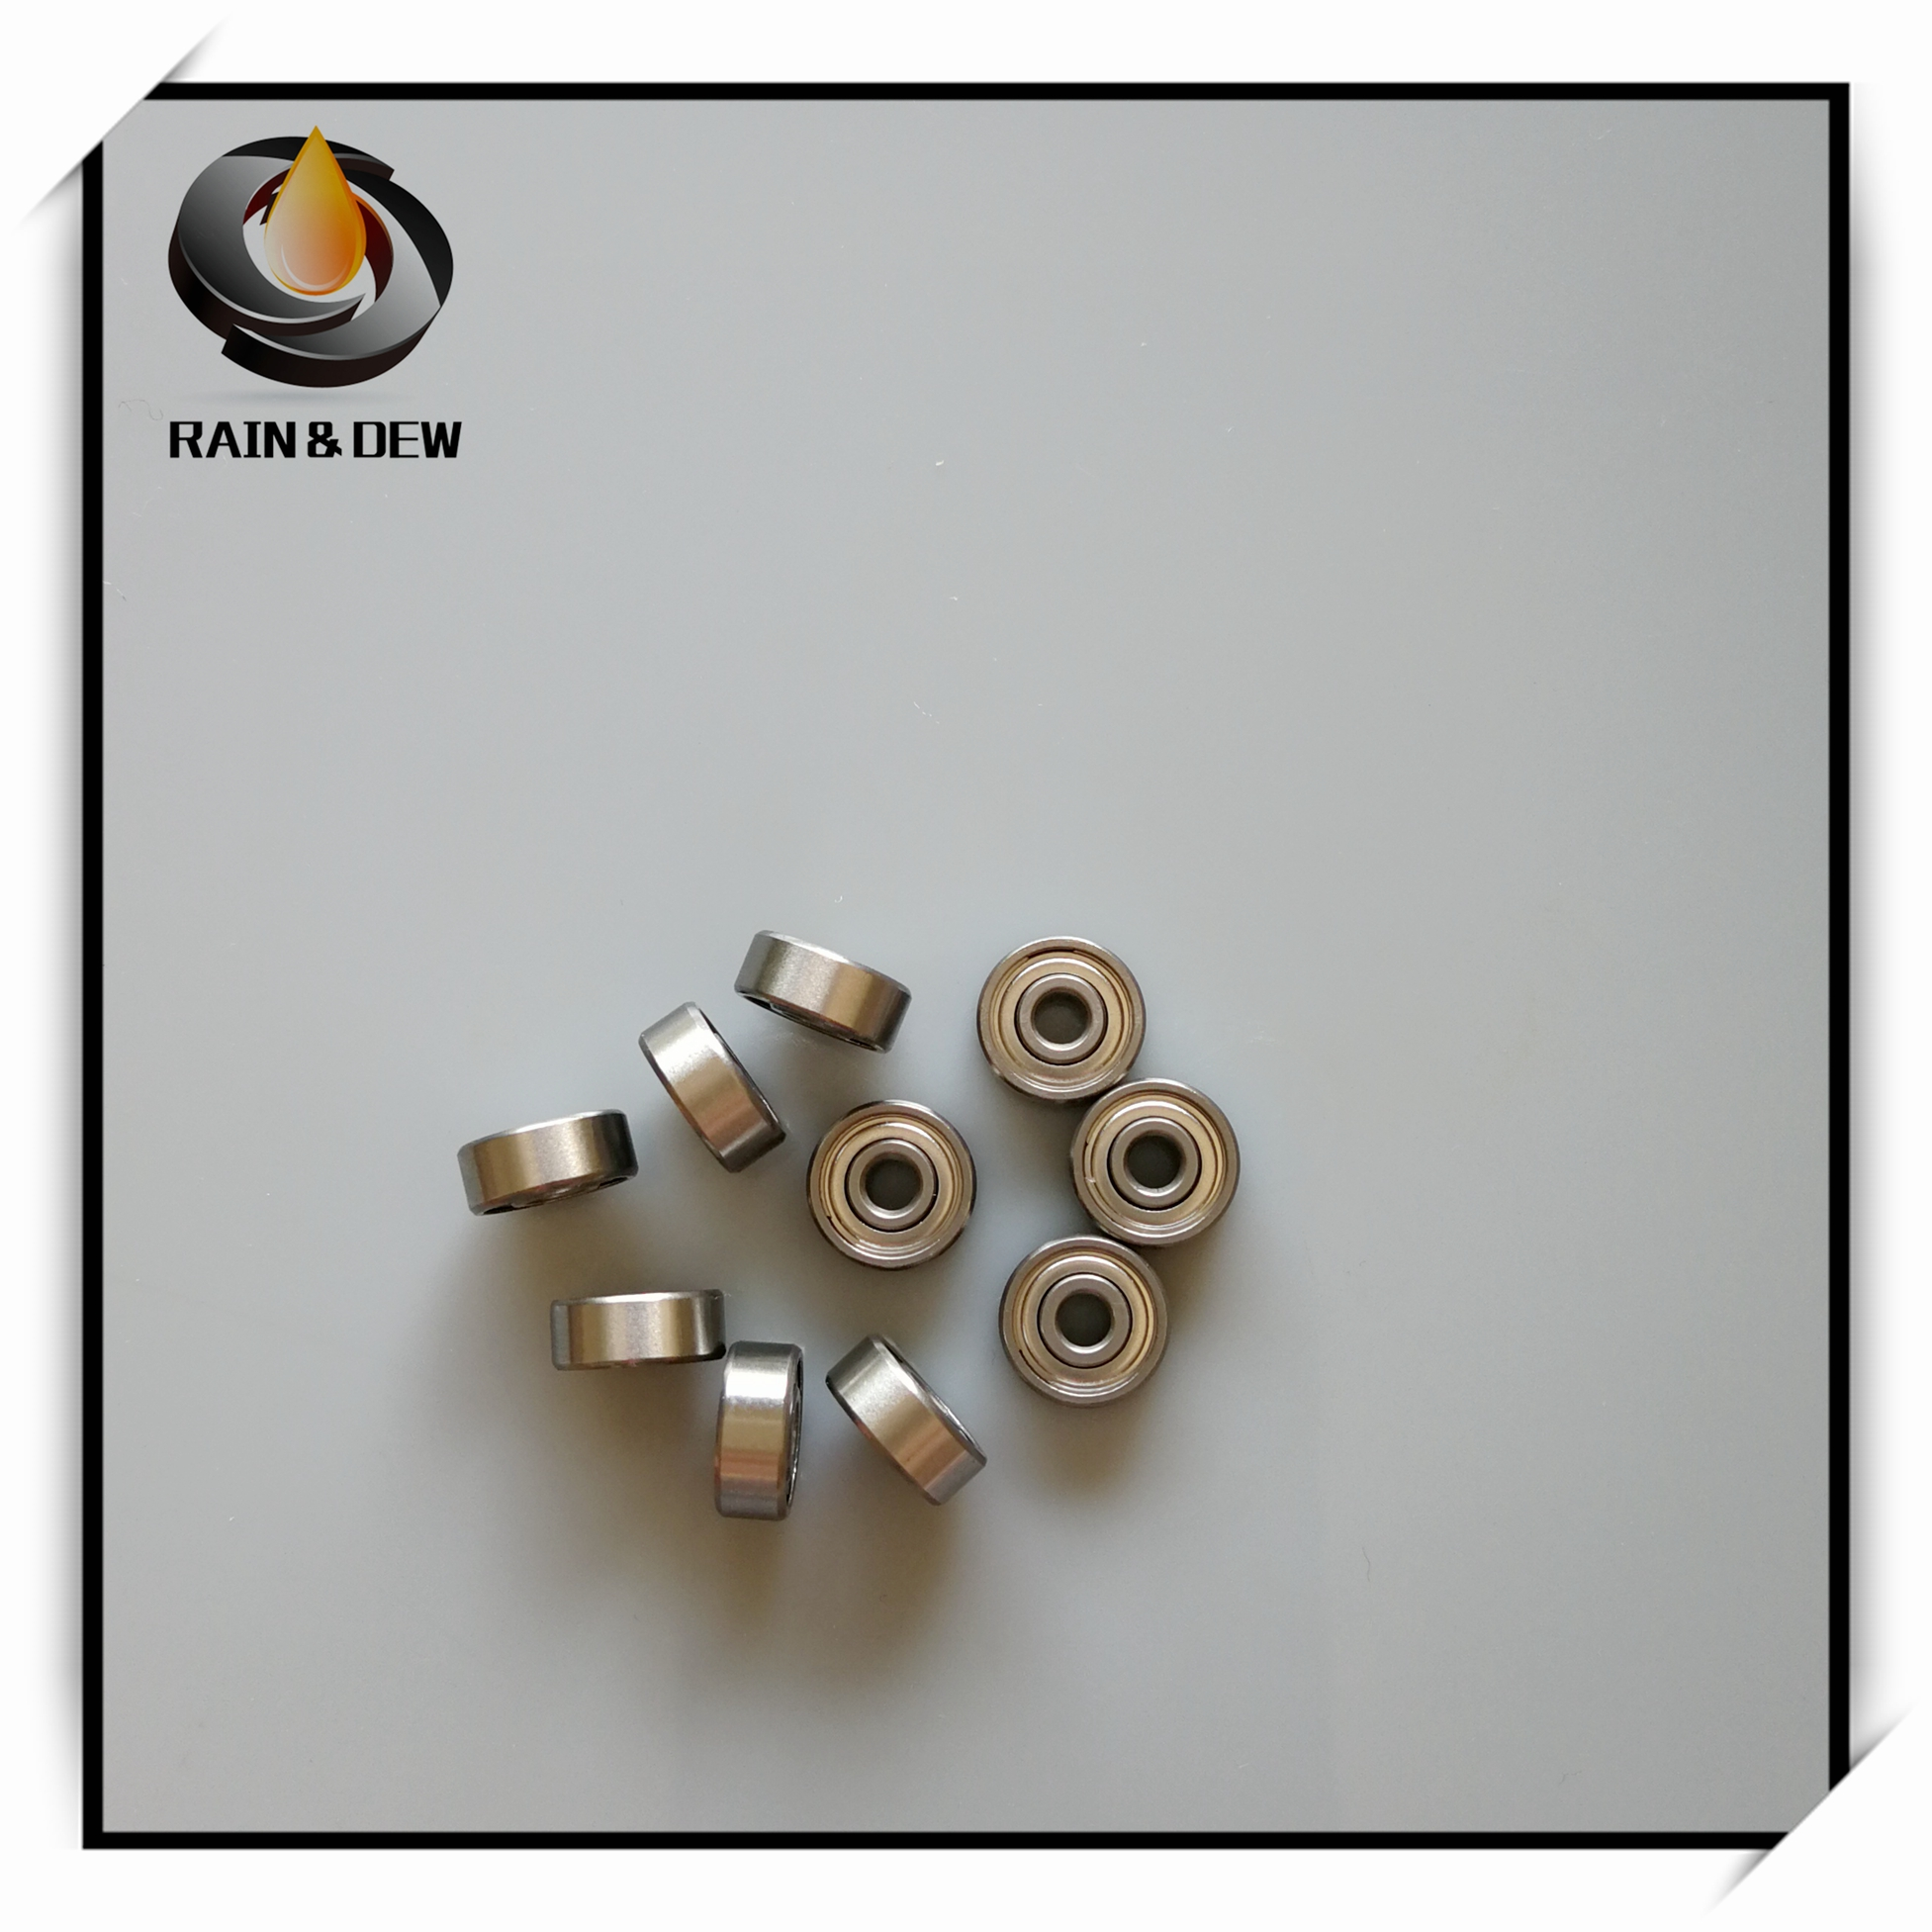 1Pcs  S684ZZ CB ABEC7 4X9X4 Mm 684 Stainless Steel Hybrid Ceramic Ball Bearing  RC Model Car Bearings